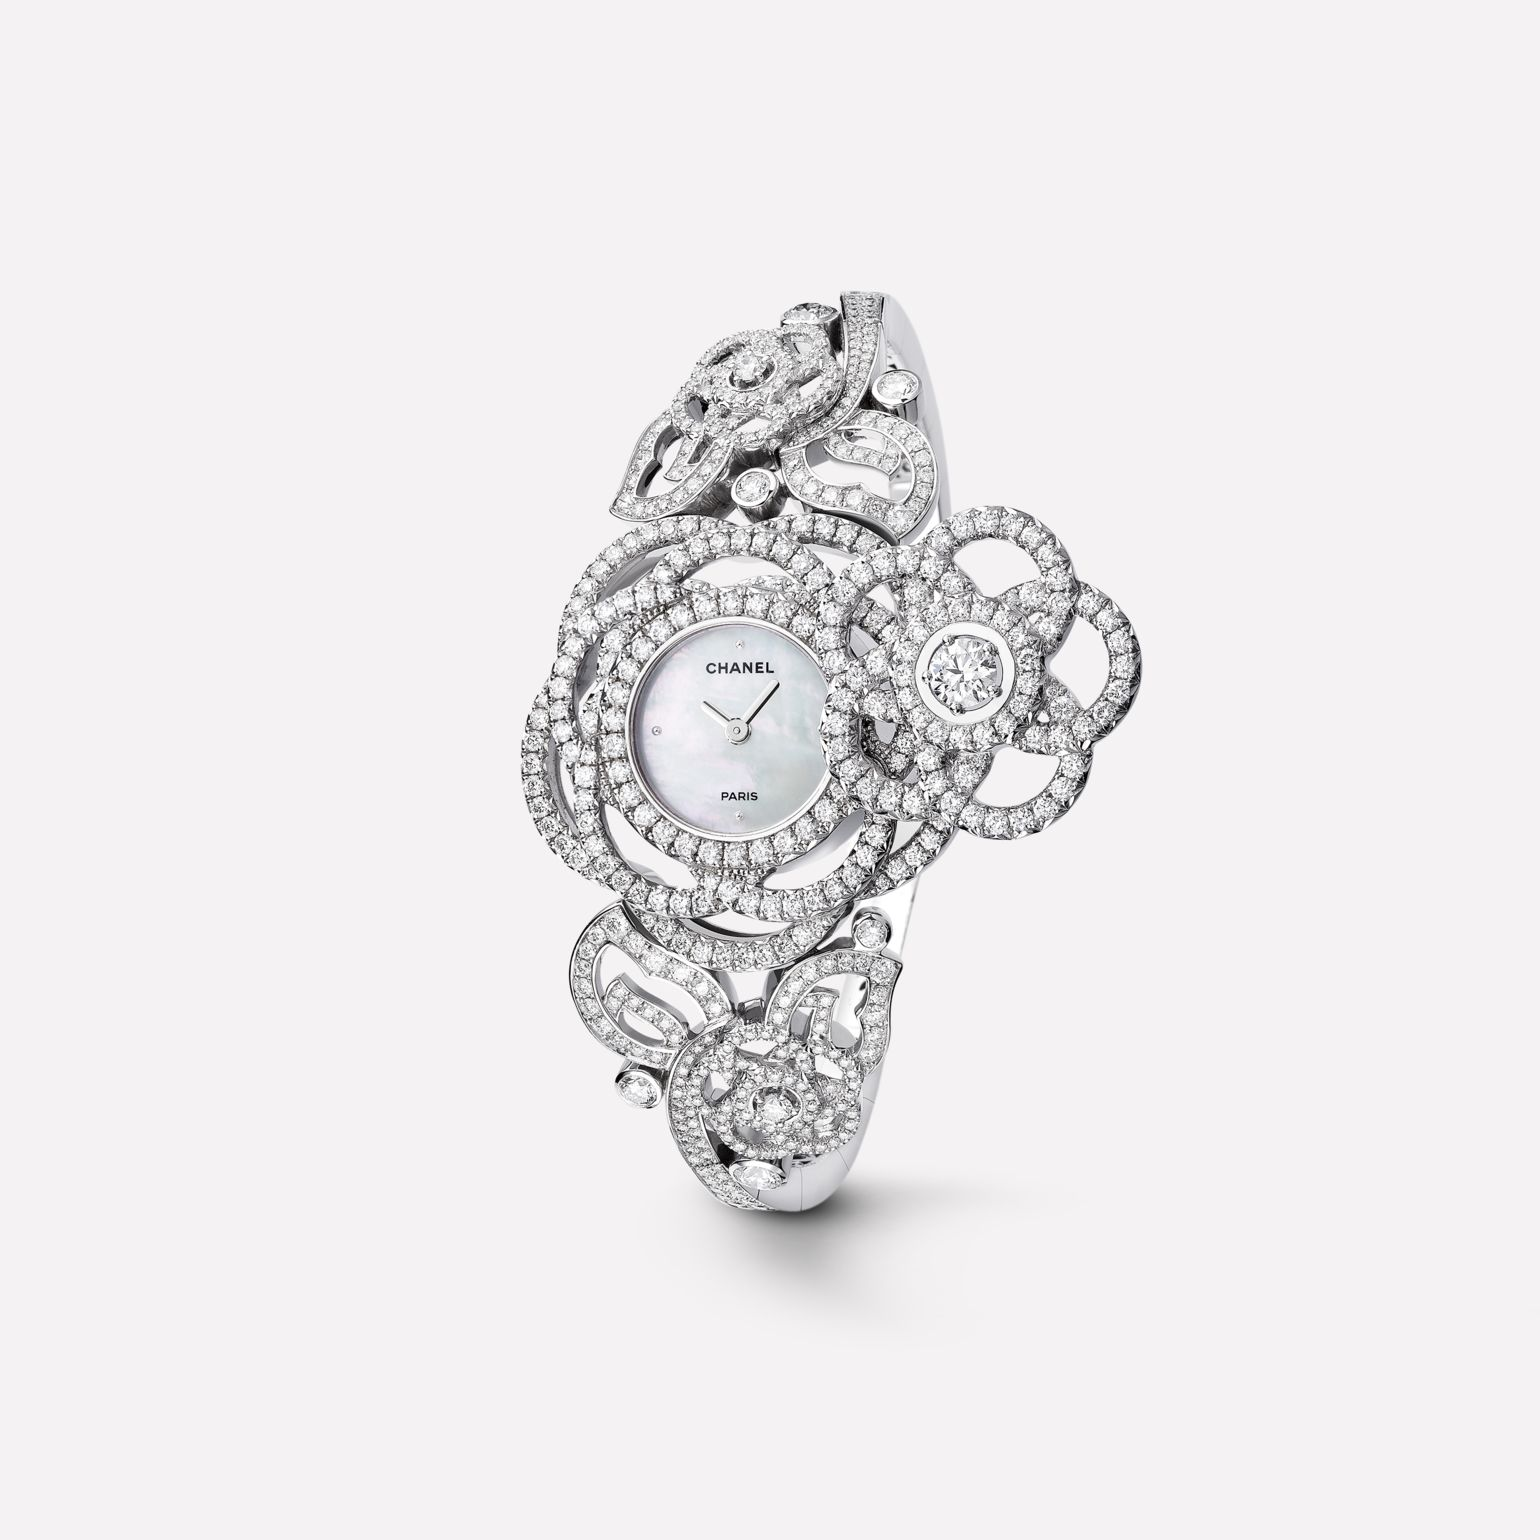 Montre Joaillerie Camélia Montre à secret motif camélia brodé en or blanc 18 carats, diamants et bracelet diamants - Grand modèle